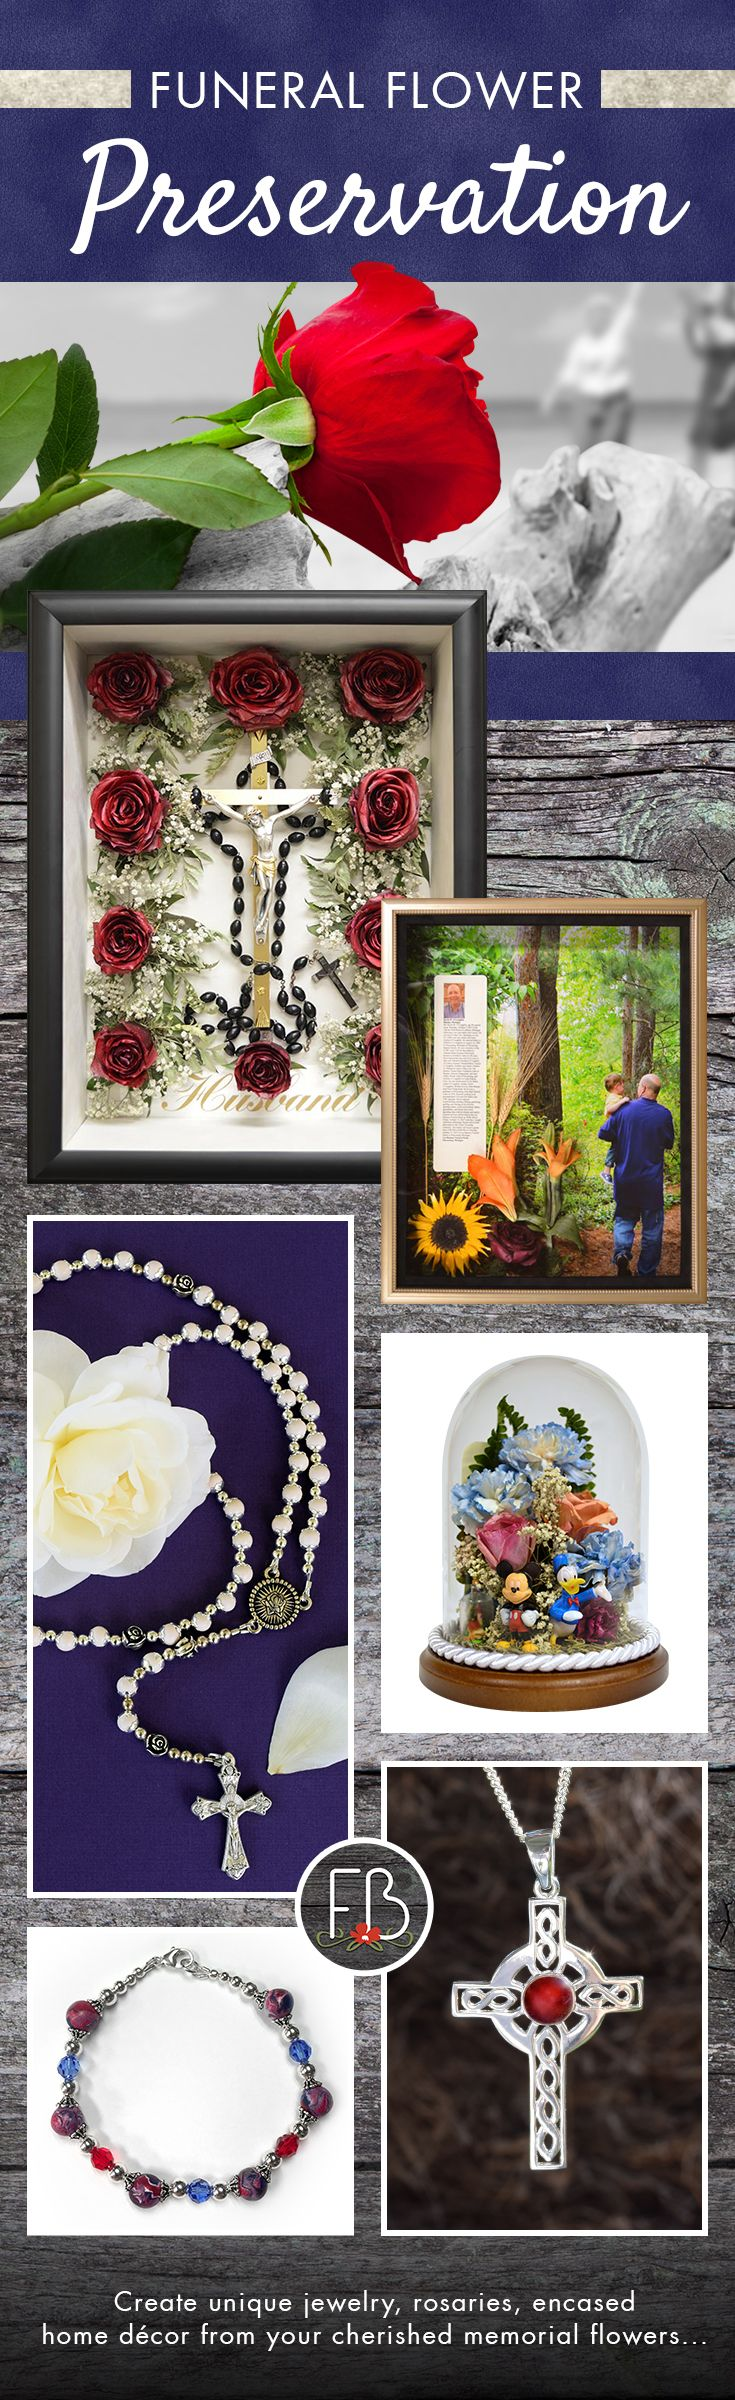 Ever wonder how to preserve flowers from a funeral fantastic blooms funeral flower preservation memorial fantastic blooms ks mo izmirmasajfo Image collections